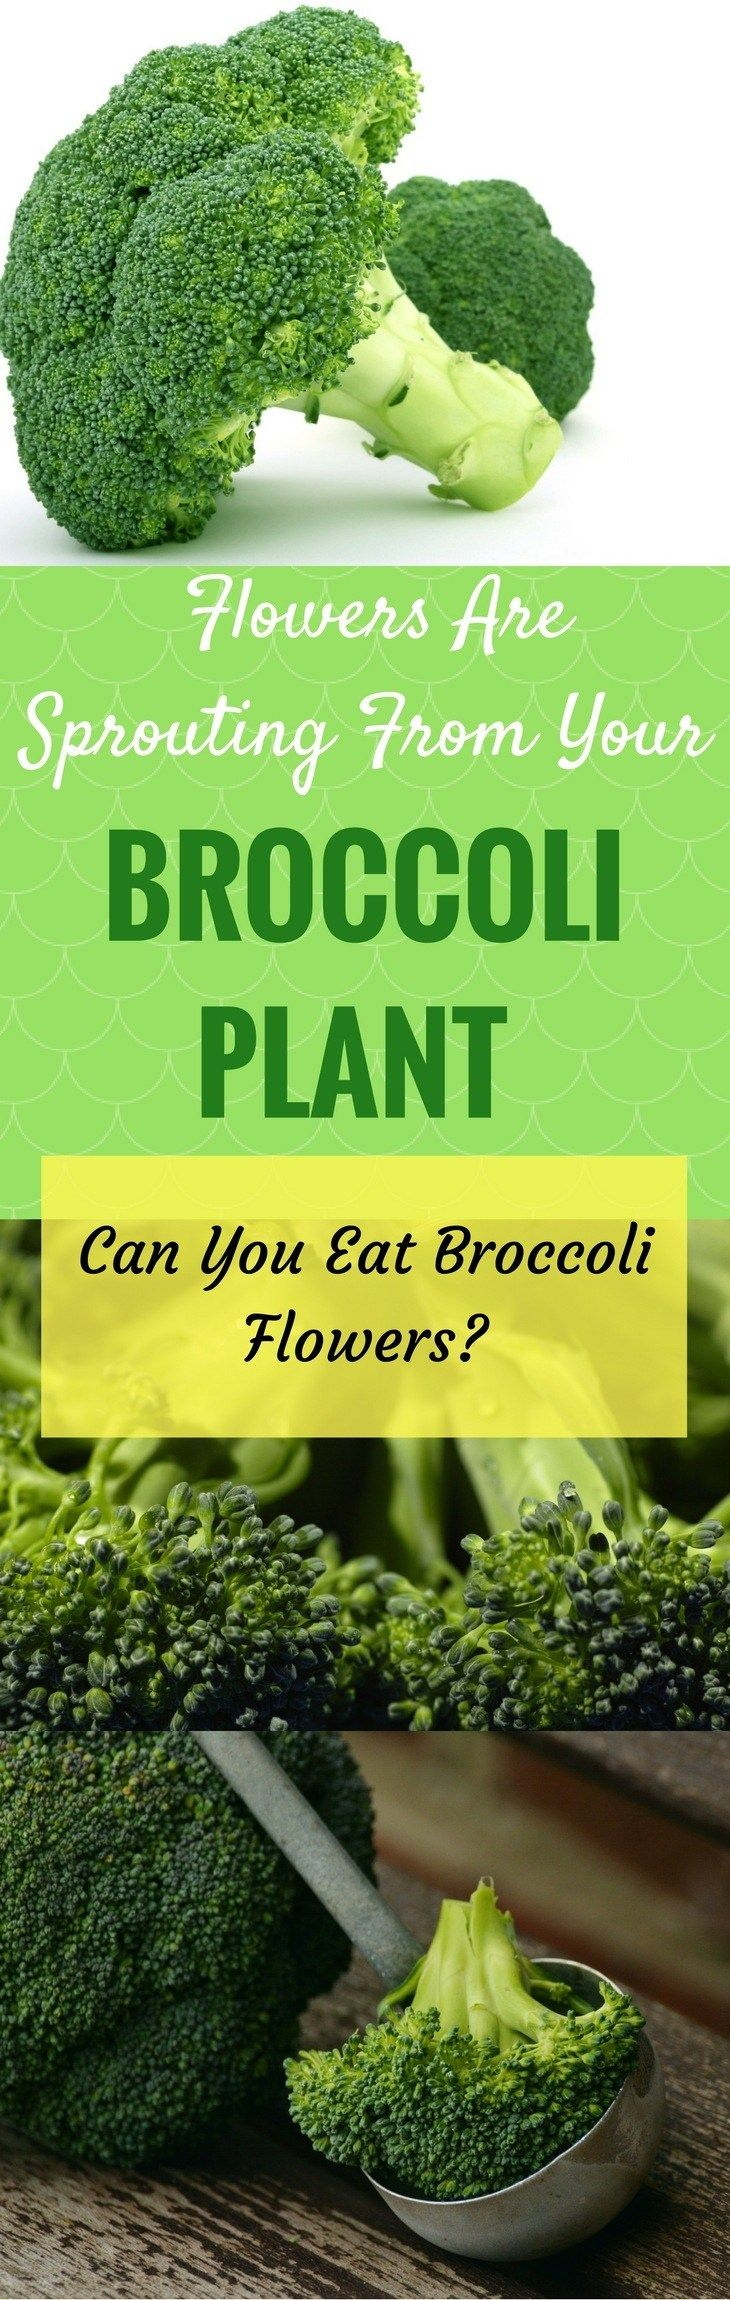 Can you eat broccoli flowers? Learn the truth about whether it's safe to eat your blossoming broccoli. https://gardenambition.com/can-you-eat-broccoli-flowers/